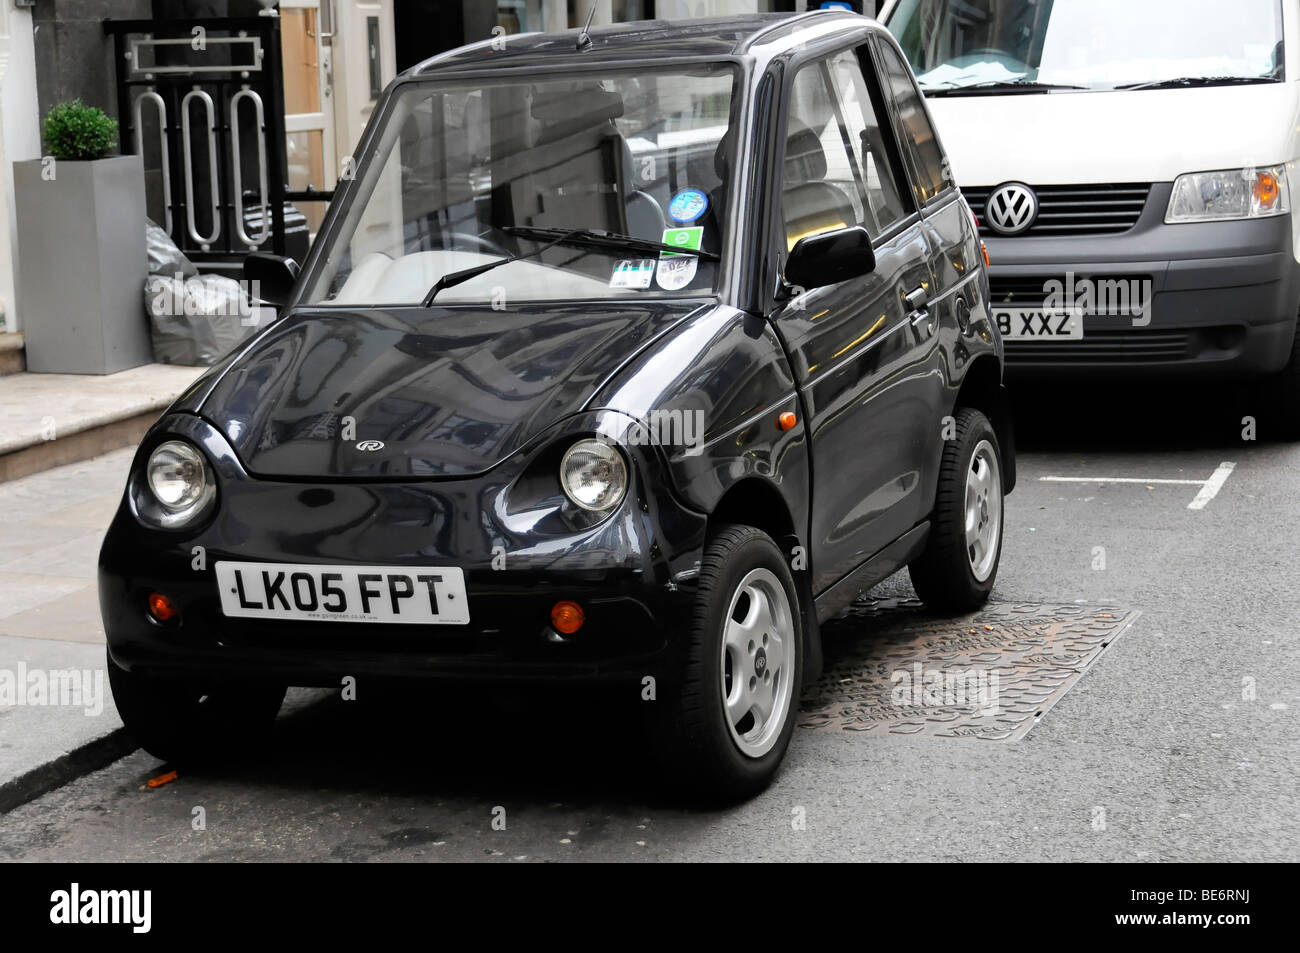 G Wiz Electric Car London United Kingdom Europe Stock Photo